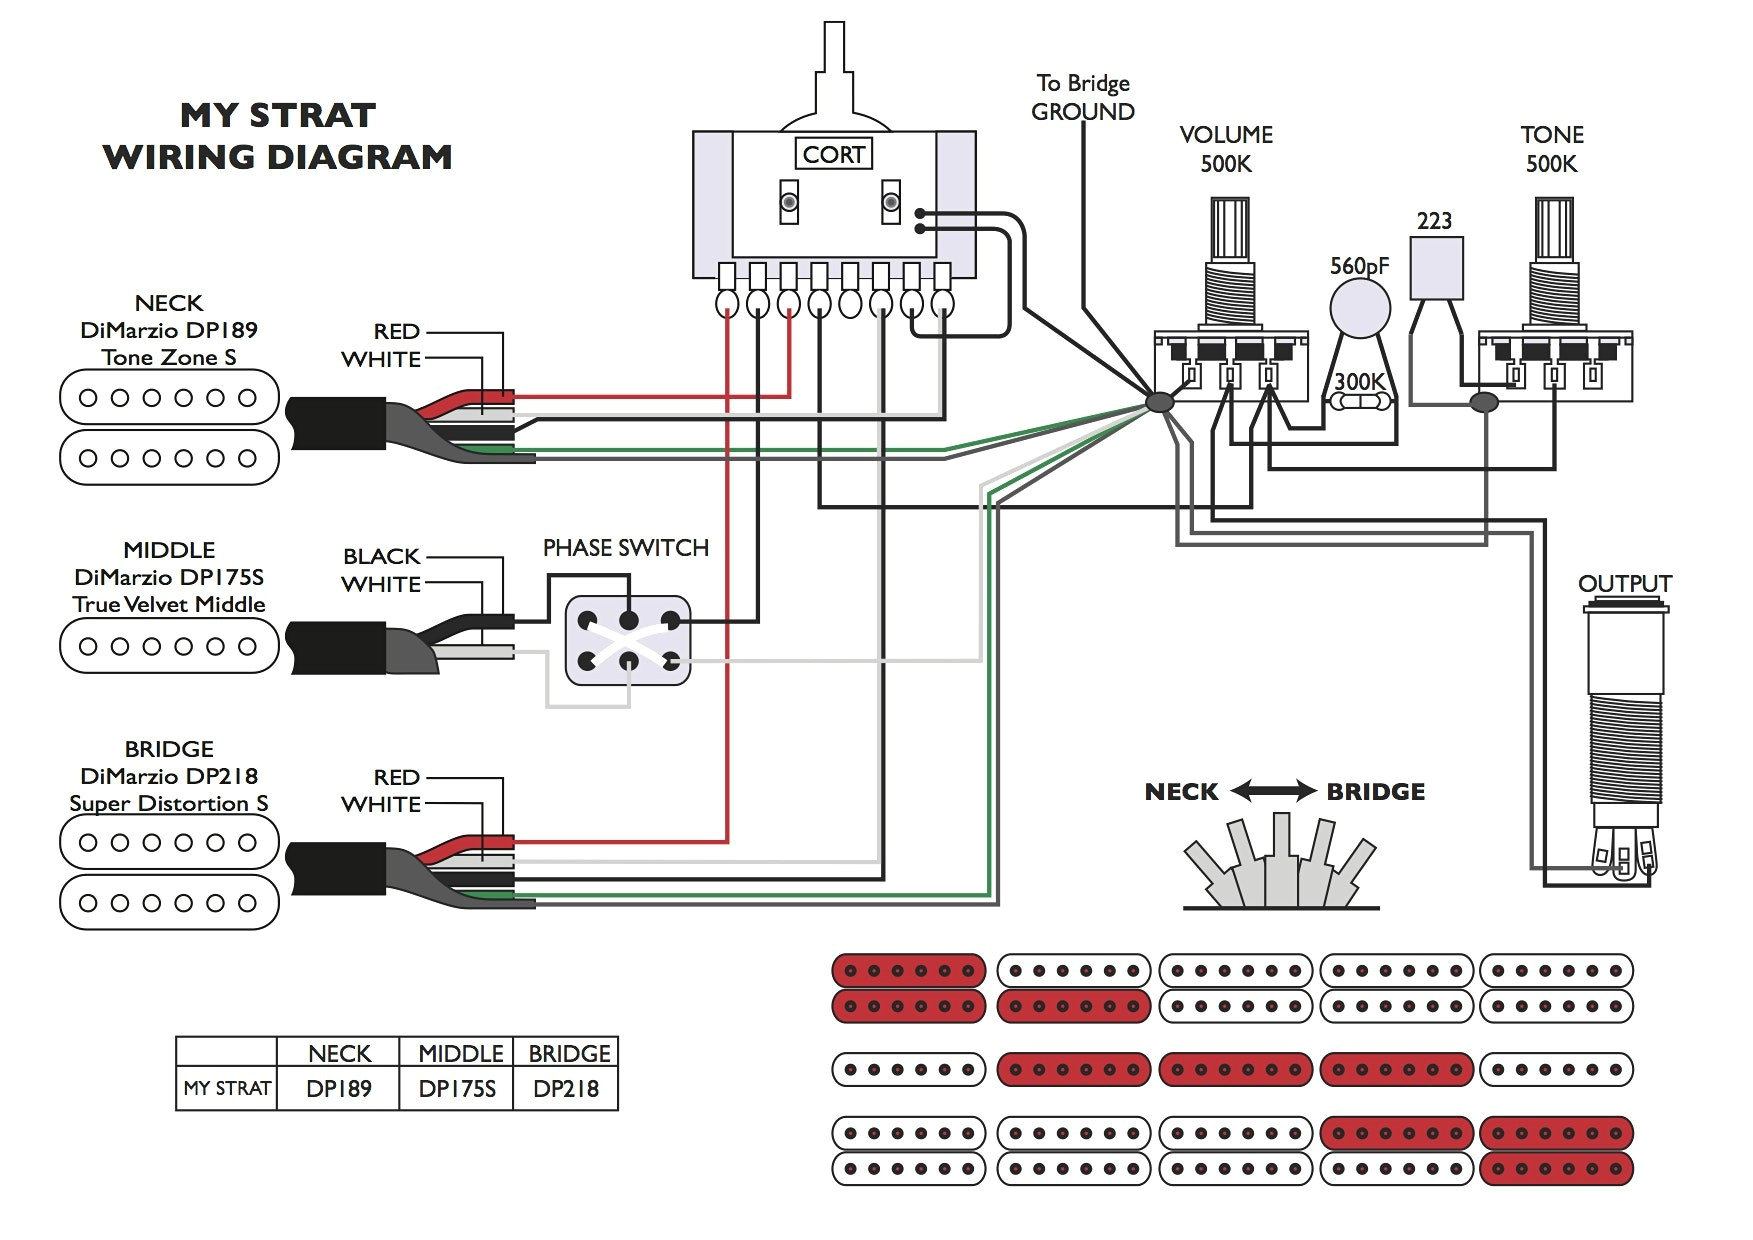 dimarzio wiring diagrams for free download rg prestige schemarg wiring diagram wiring diagrams yeszz dimarzio wiring